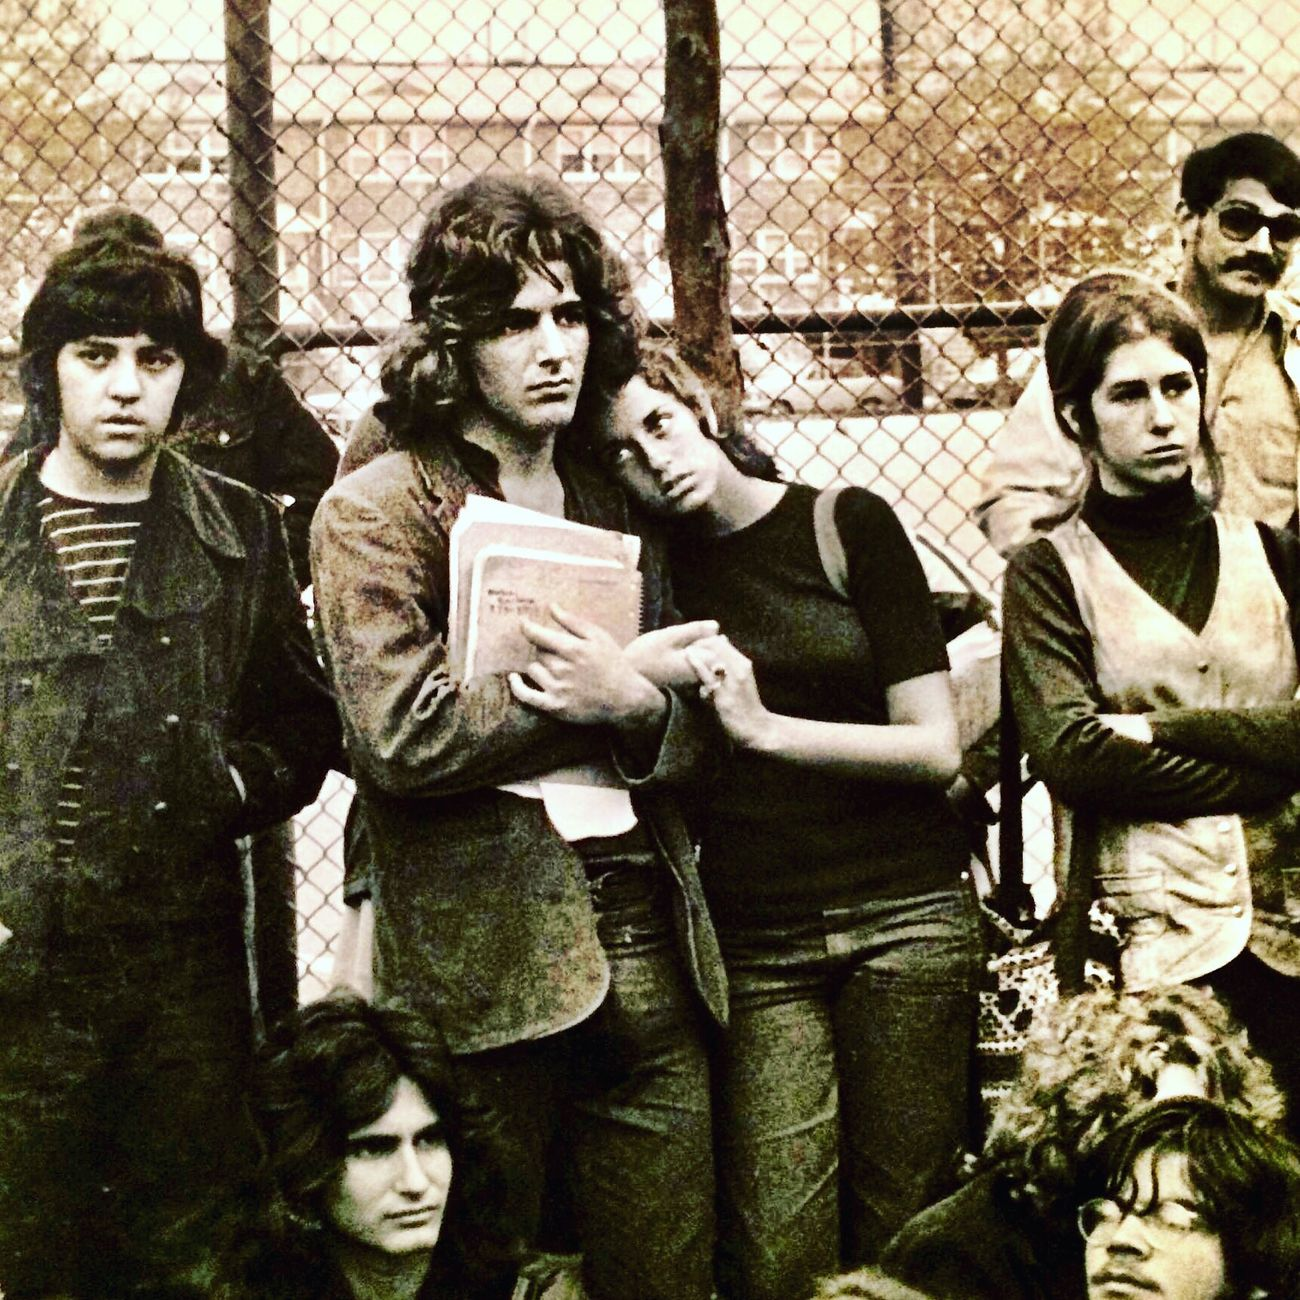 One of my back in the day pics. Lafayette HS circa 69-70